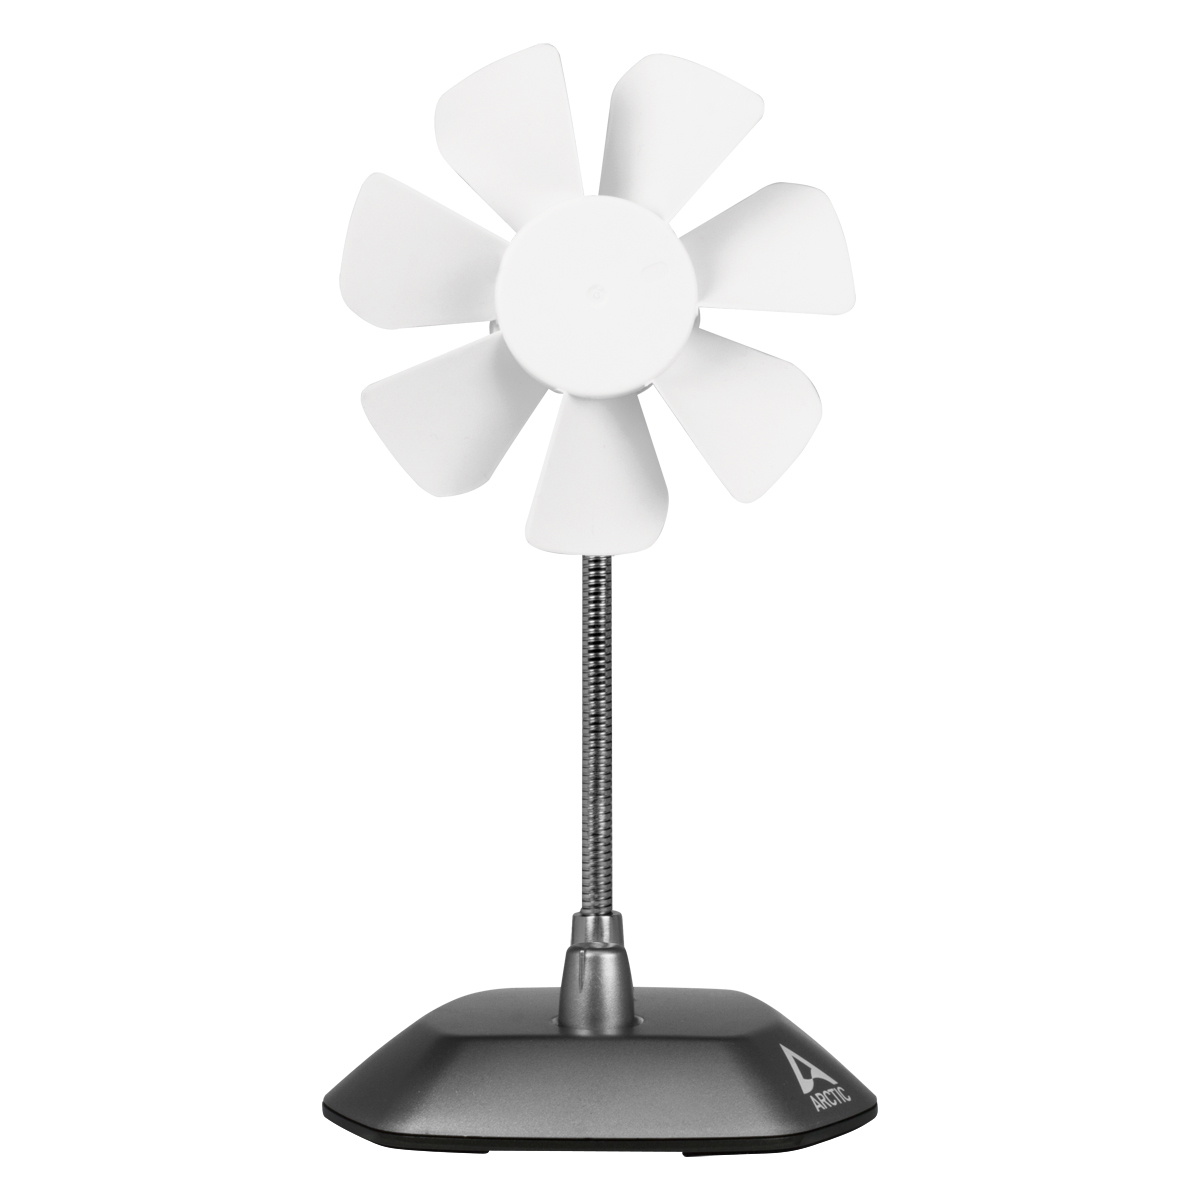 USB Desktop Fan Breeze Silver by Arctic ABACO-BZP0301 White image